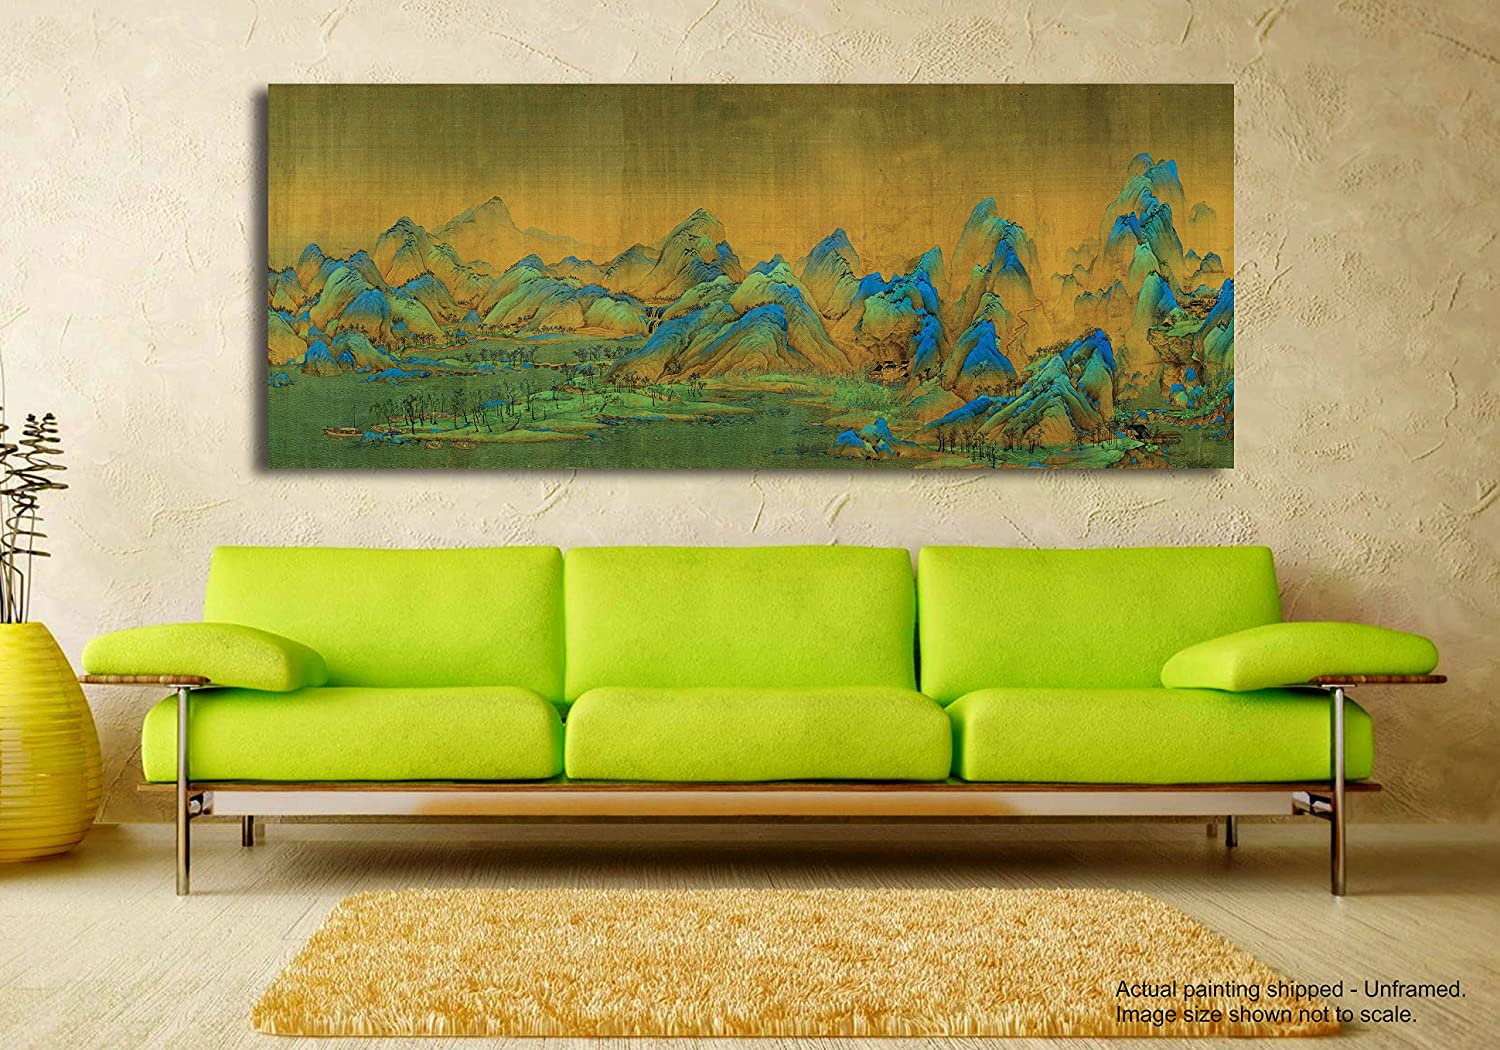 Tamatina Canvas Painting - Blue Top Mountains - Home Décor - Paintings For Living Room - Modern Art Painting - Painting for Home Décor - Painting ...